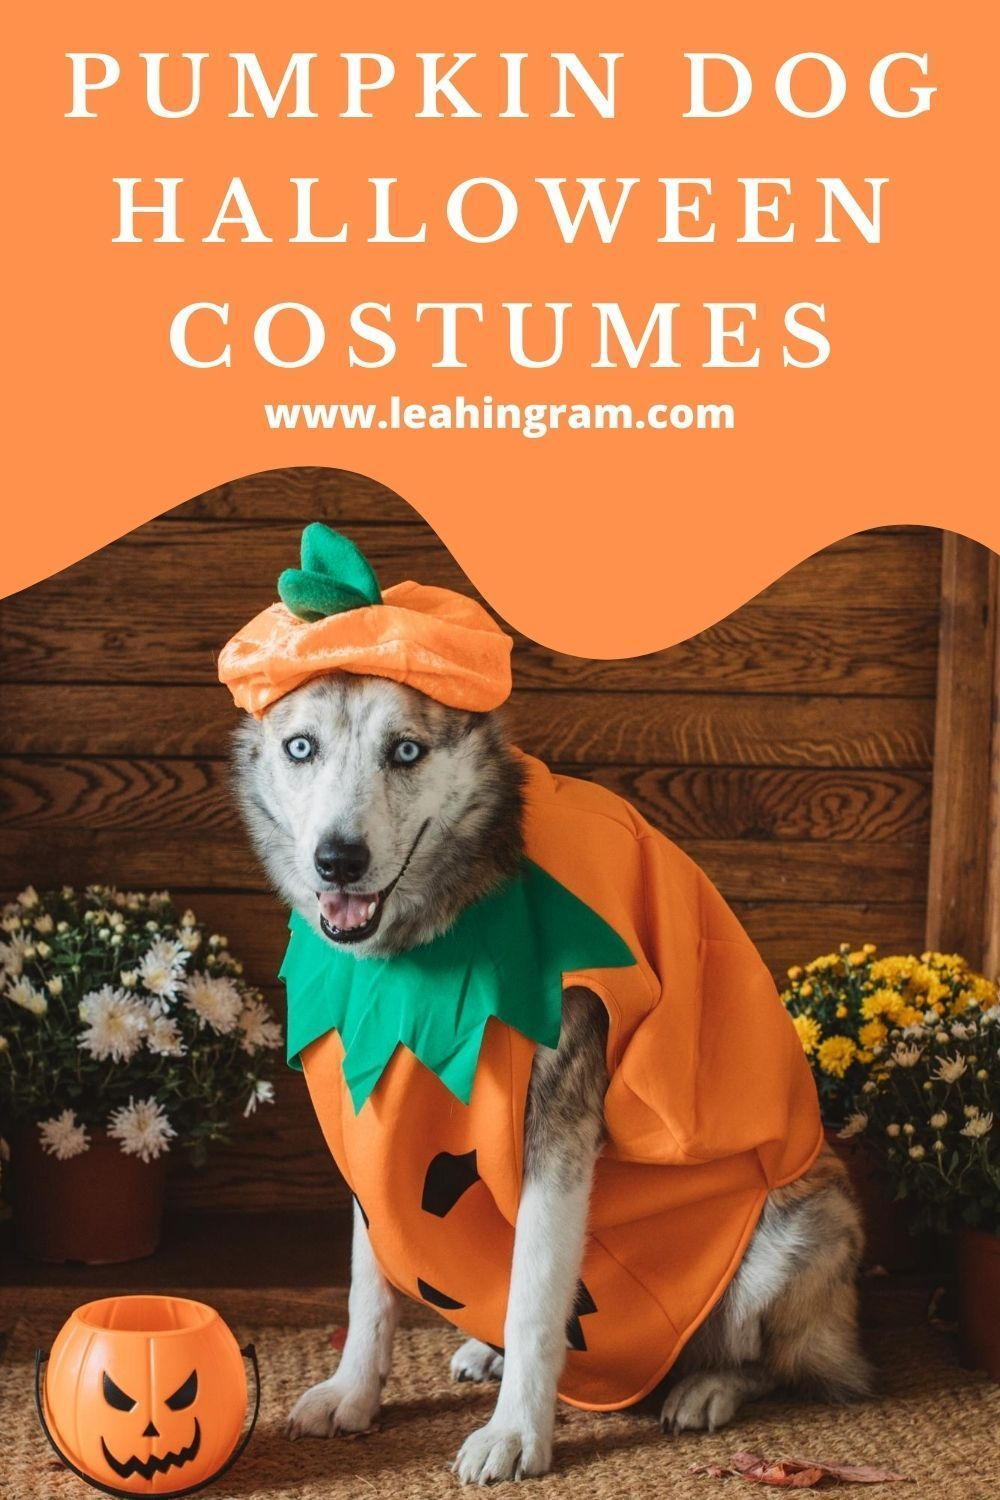 Halloween 2020 Dogs Awesome Dog Costumes for Halloween 2020   Leah Ingram in 2020